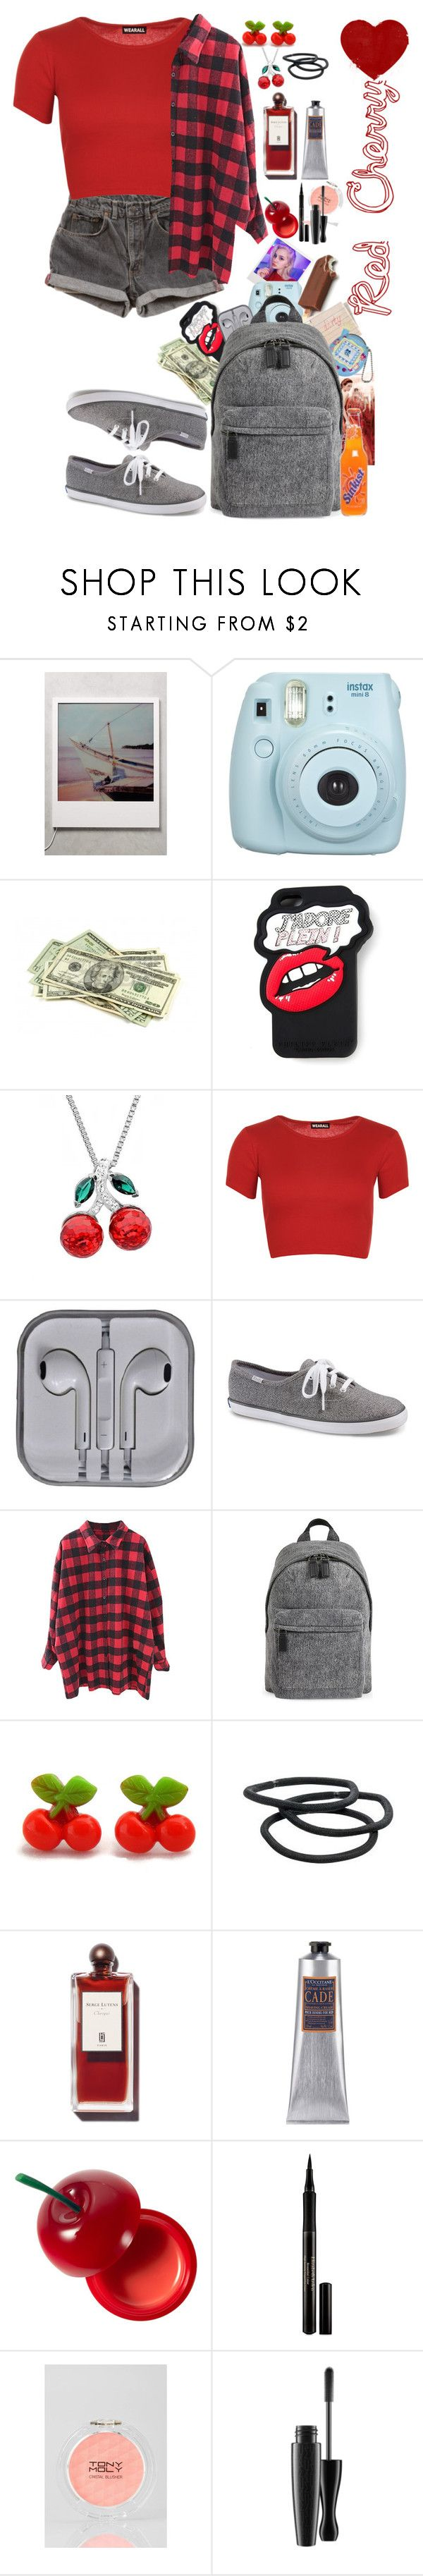 """Red Cherry"" by neptunelittlegirl ❤ liked on Polyvore featuring Fujifilm, Hahn, Philipp Plein, Amanda Rose Collection, Levi's, WearAll, Keds, Marc Jacobs, Retrò and Goody"